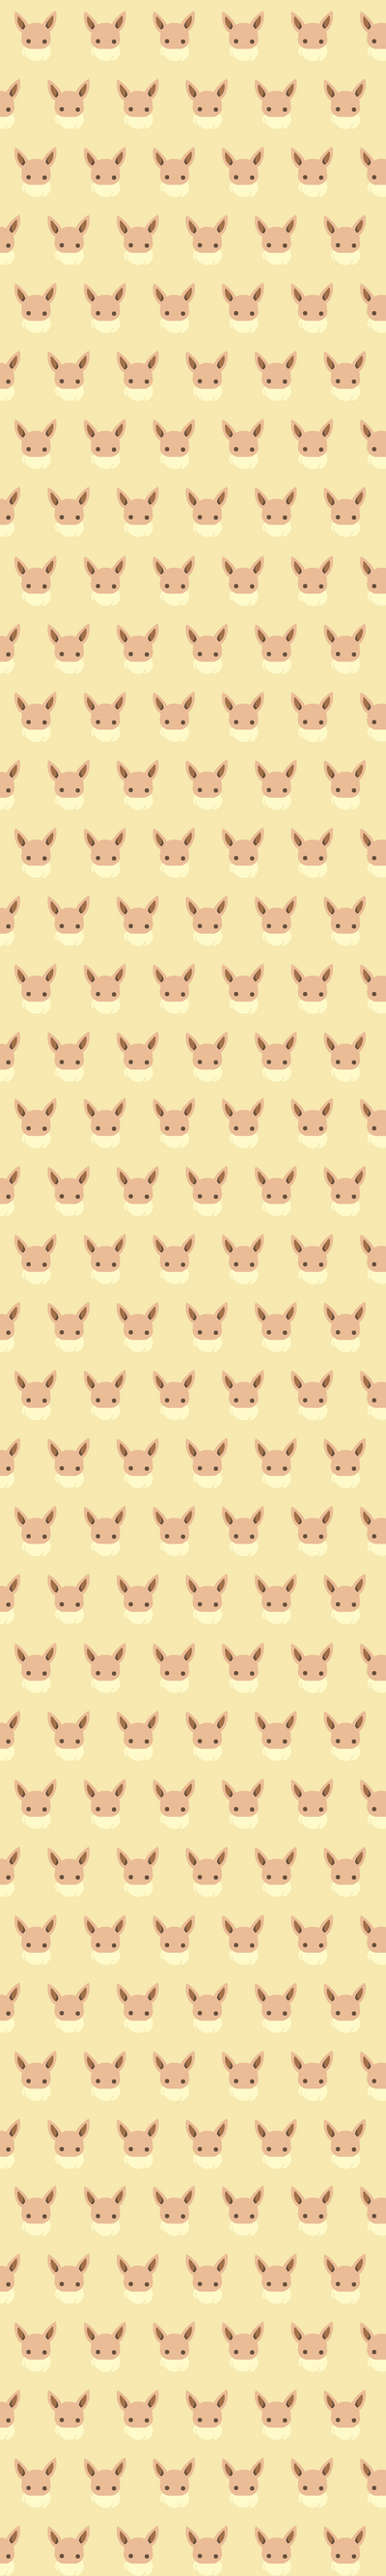 Free Eevee Custom Box BG by FuwaFuwaPuppy